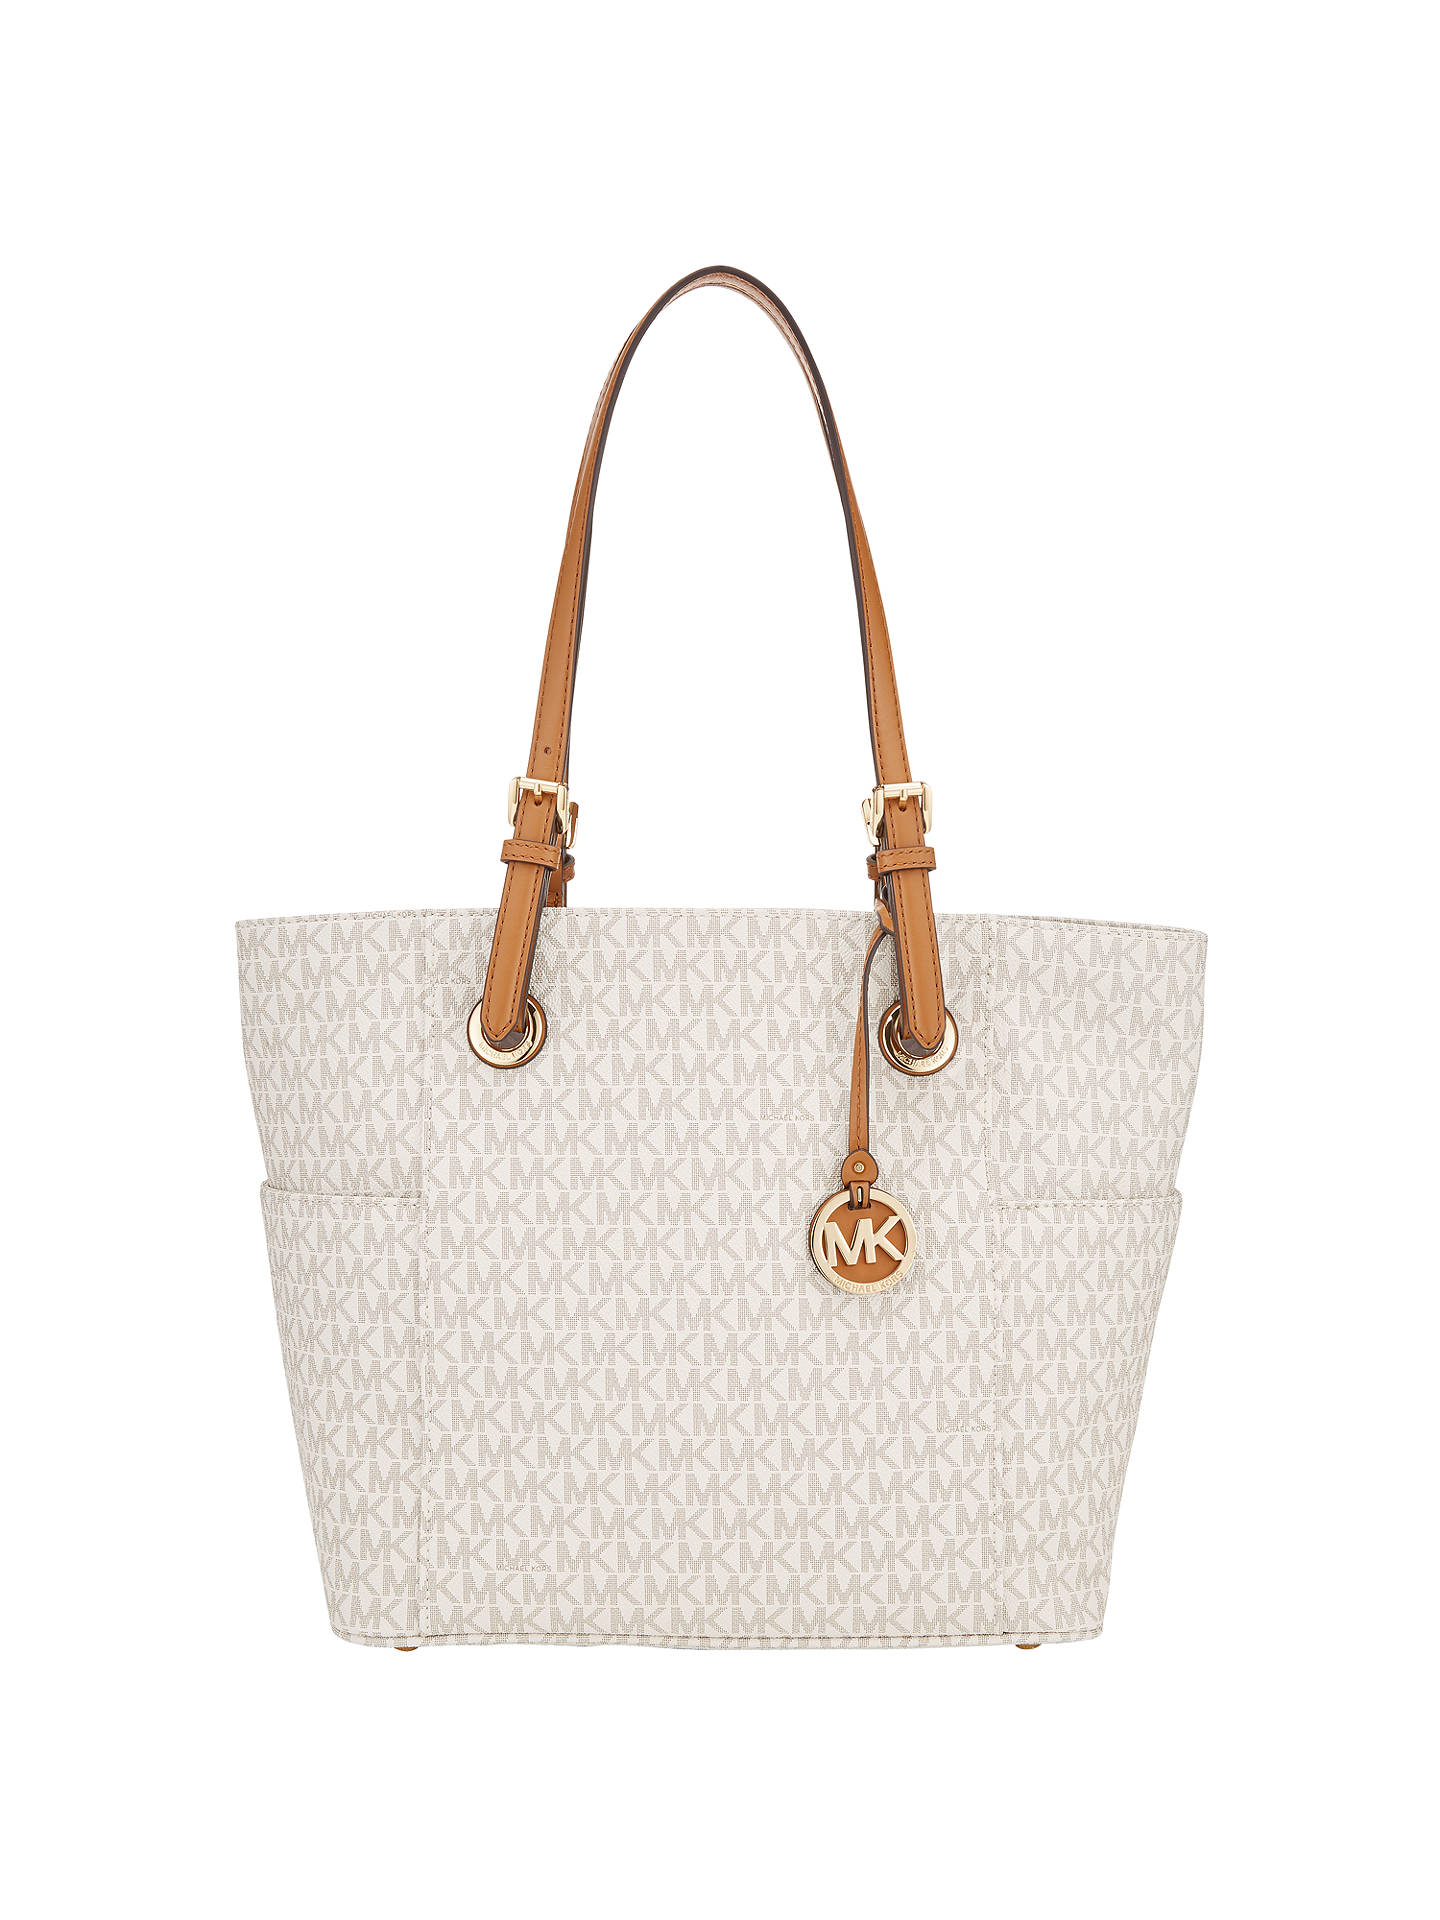 Michael Kors Jet Set Signature Tote Bag Vanilla Online At Johnlewis